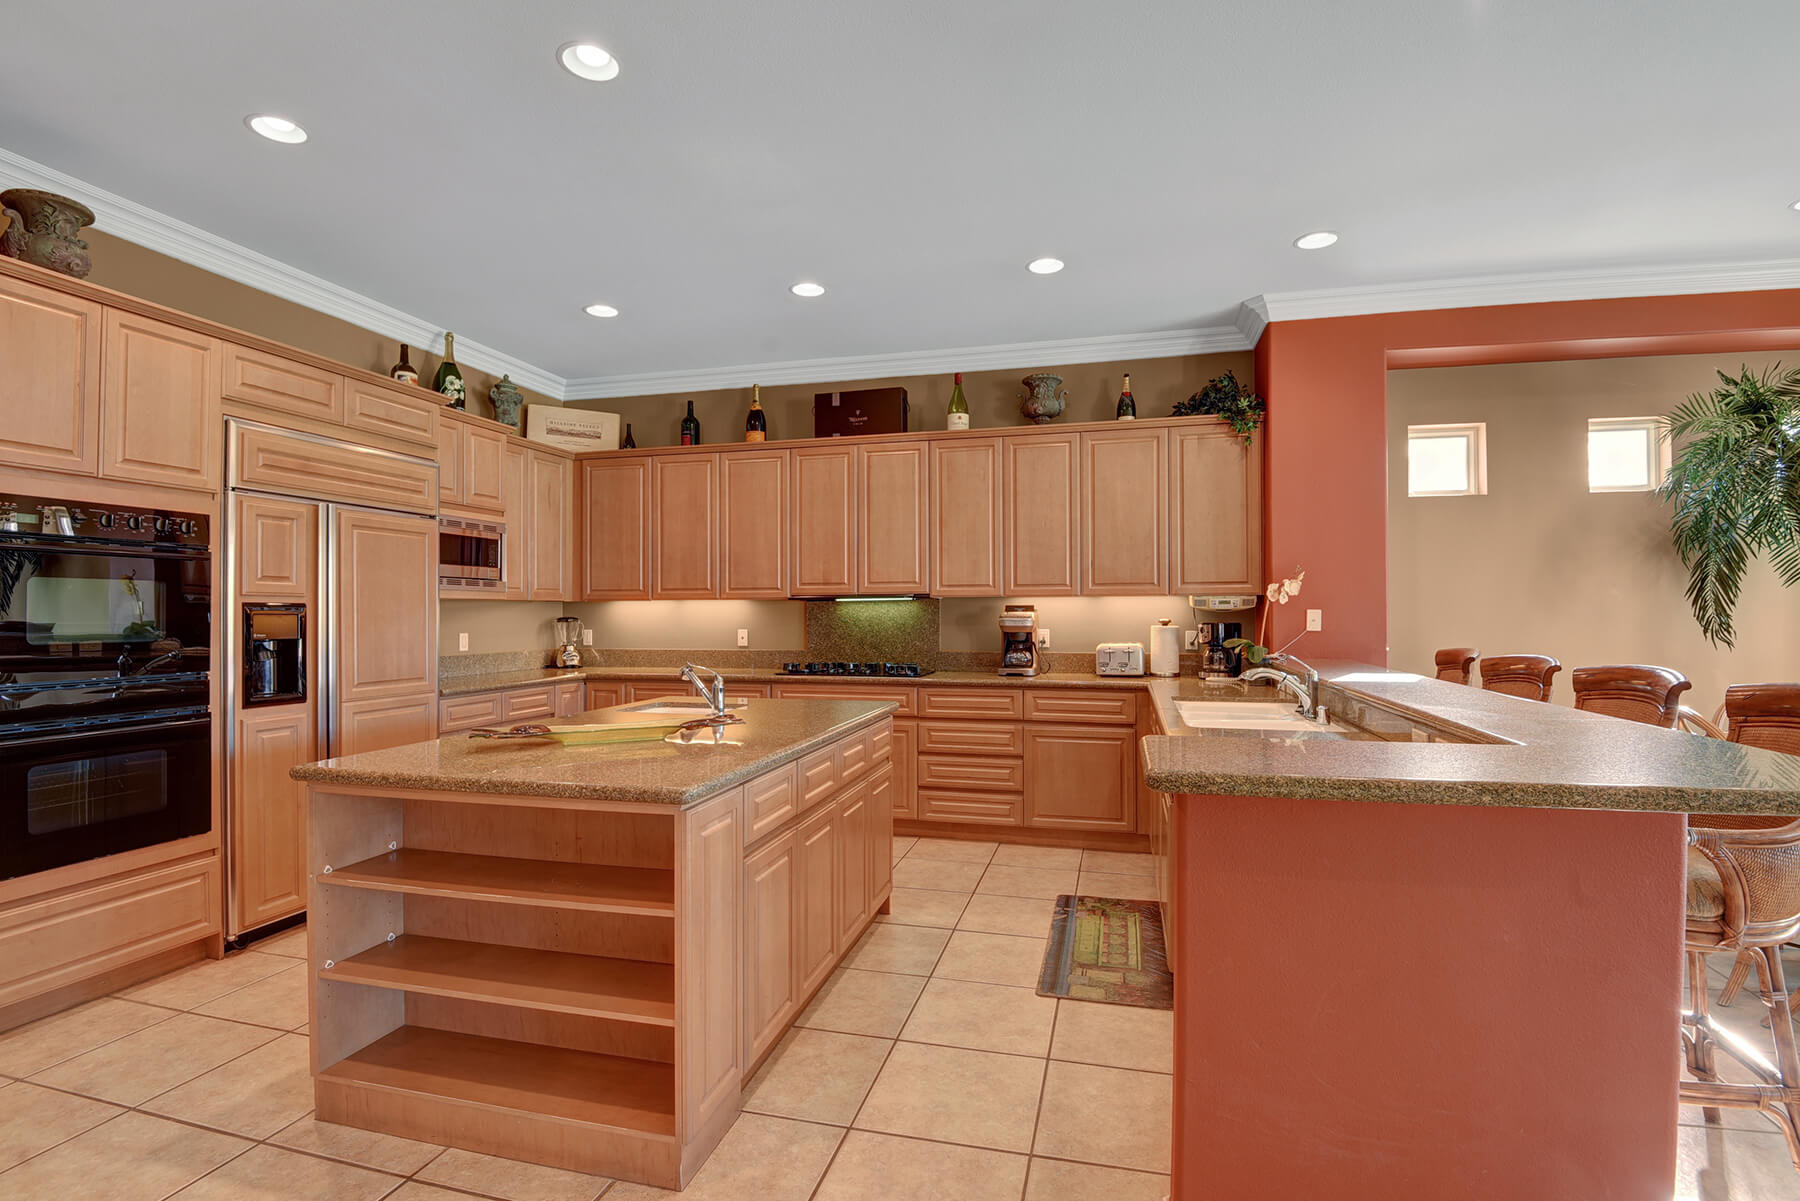 B97A3D8B-155D-0010-07E8C3F419CBD6C9-KITCHEN MLS.jpg